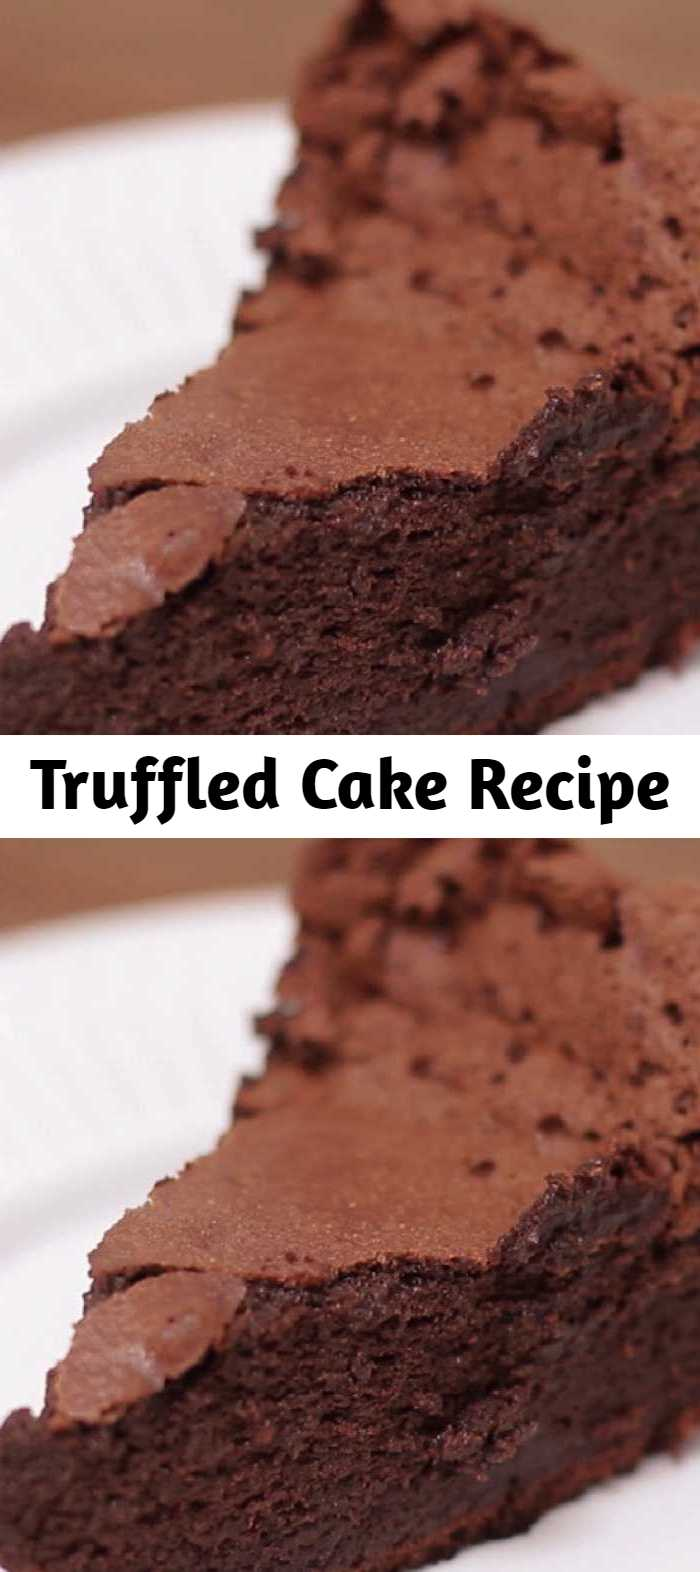 Truffled Cake Recipe - Enjoy the silky smooth texture of a chocolate truffle in cake form.